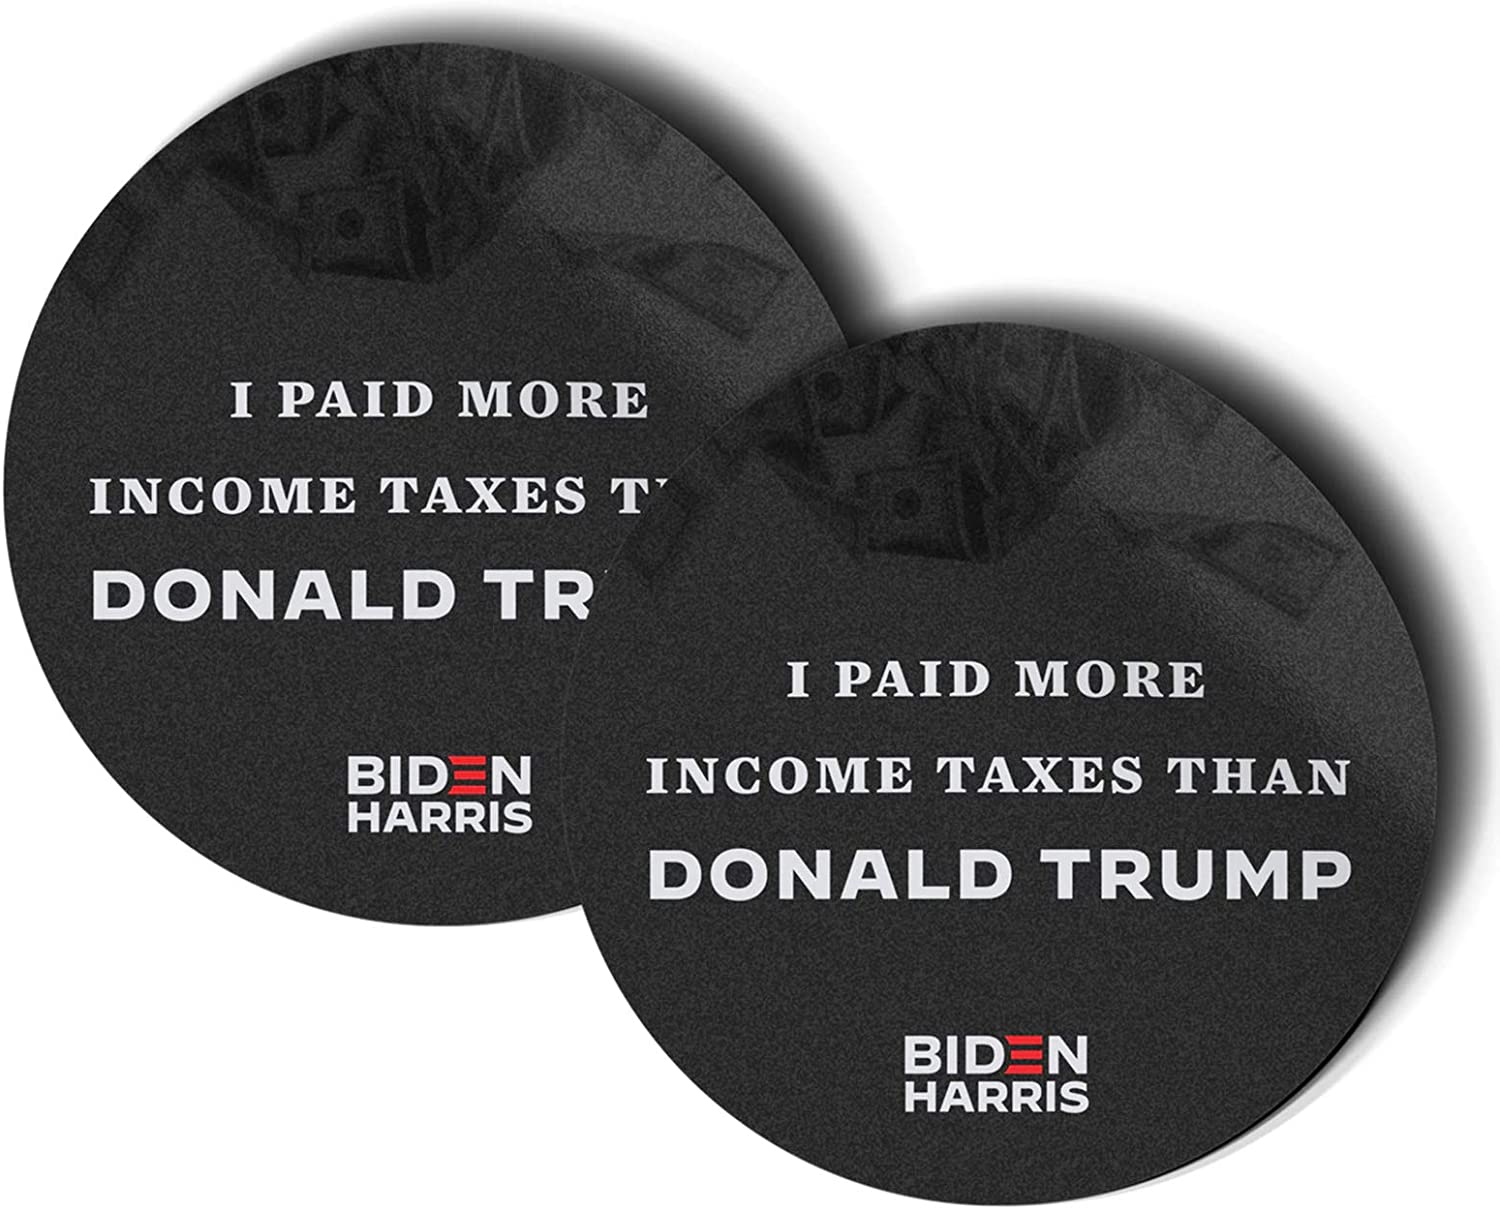 I Pay More In Taxes Than Donald Trump - Kaitellnie 2 Pcs America President Biden Harris Stickers for Adult Teen Vinyl Decal for Laptop Skateboard Water Bottle Phone Bike Car Luggage Guitar Travel Case